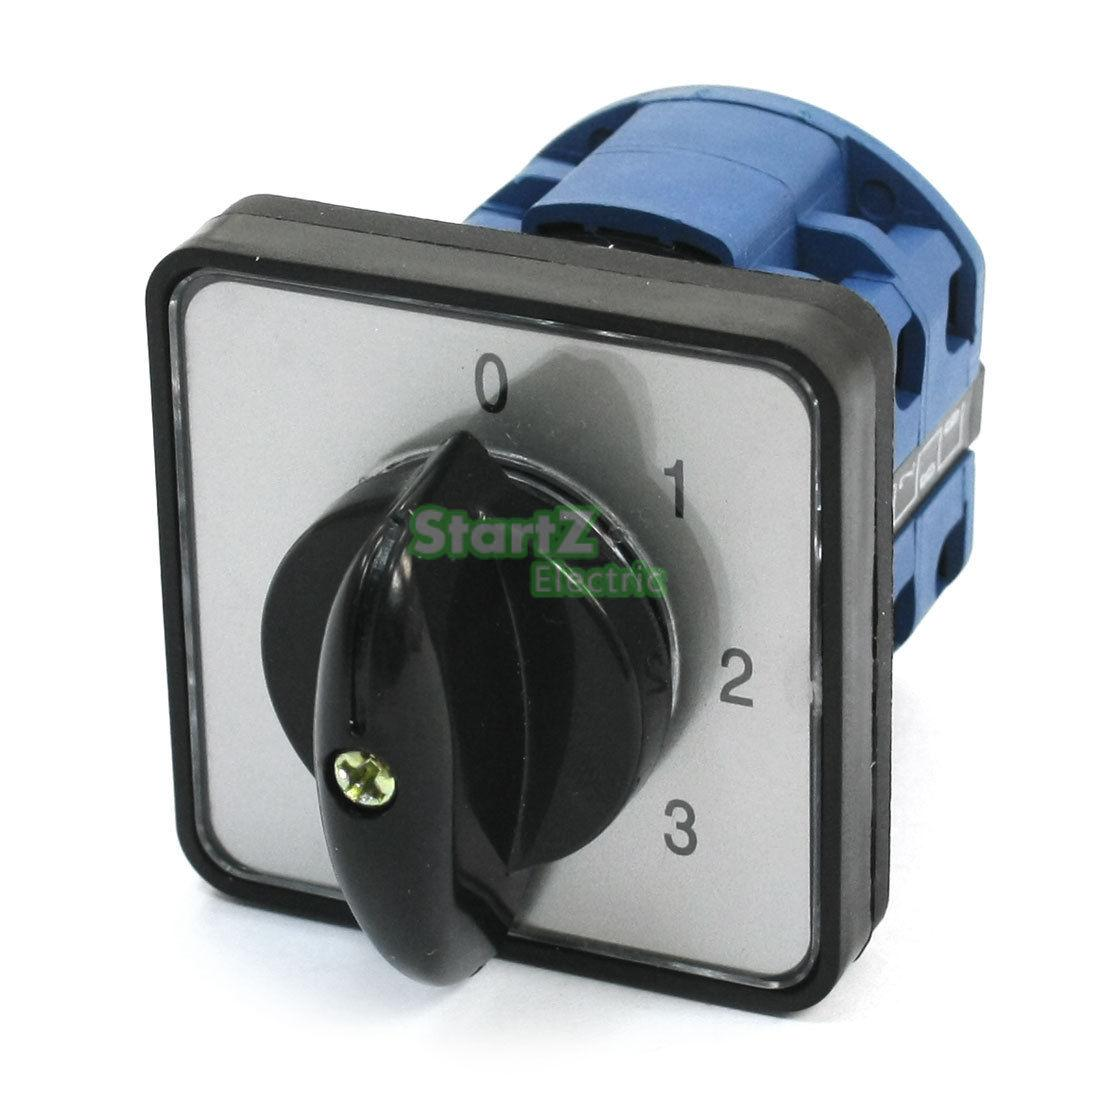 Panel Mount 4-Position Universal Rotary Cam Changeover Switch LW26-20 panel mount rotary cam changeover ammeter switch 4 positions ca10 a048